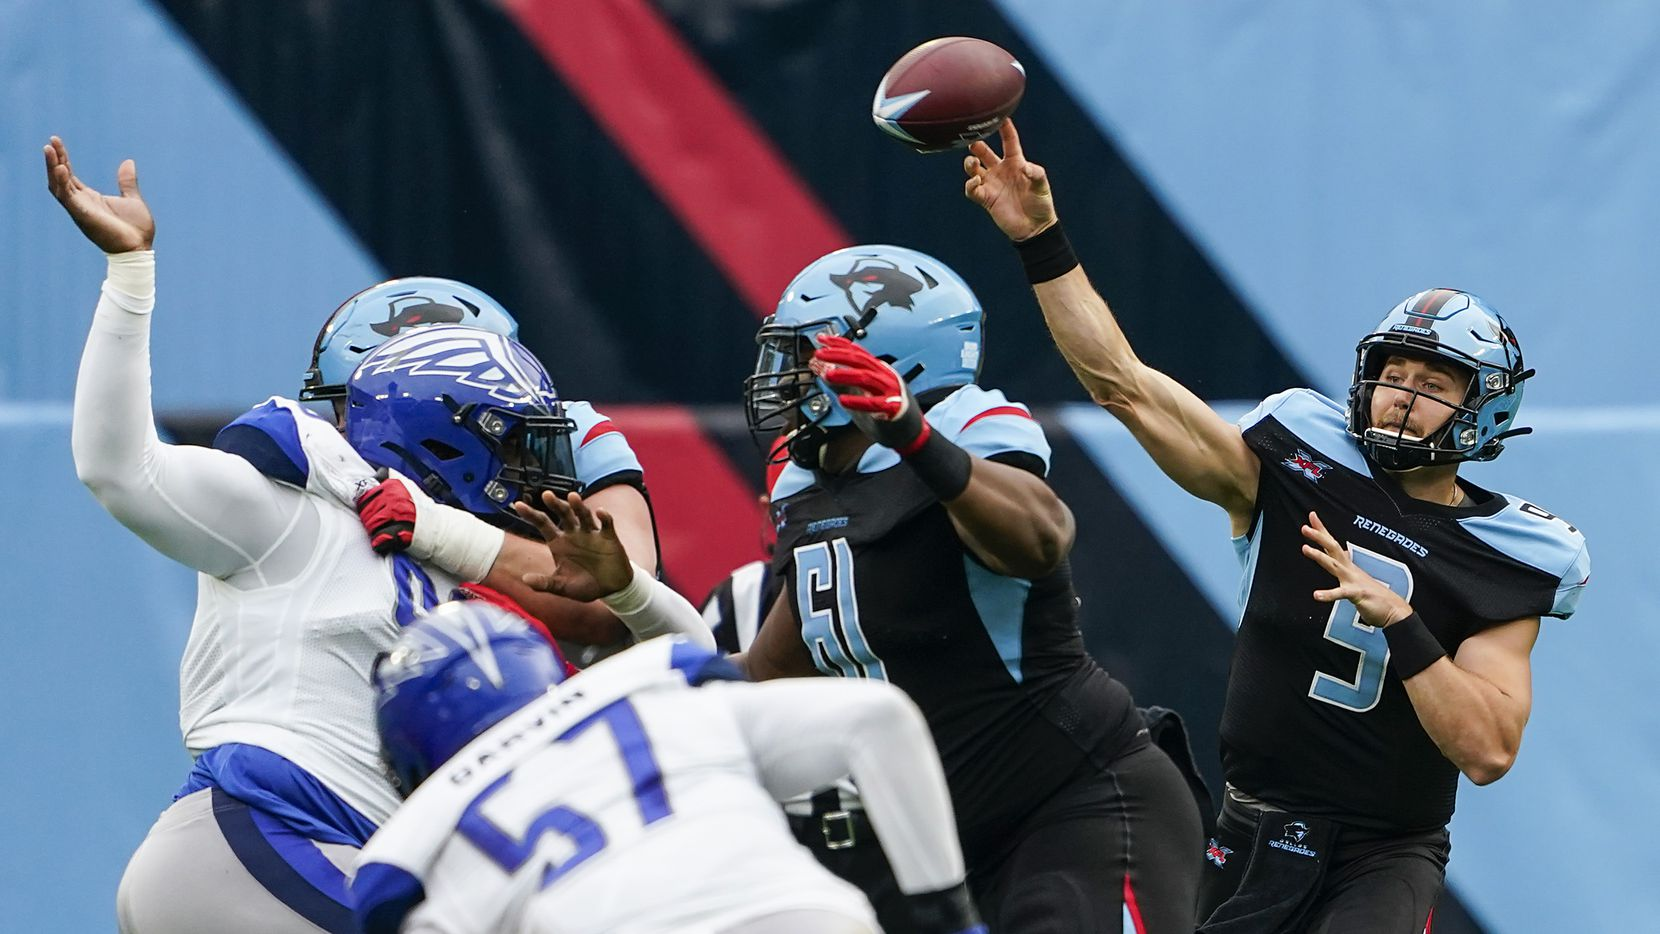 Dallas Renegades quarterback Philip Nelson (9) throws a pass during the first half of an XFL football game against the St. Louis Battlehawks at Globe Life Park on Sunday, Feb. 9, 2020, in Arlington.